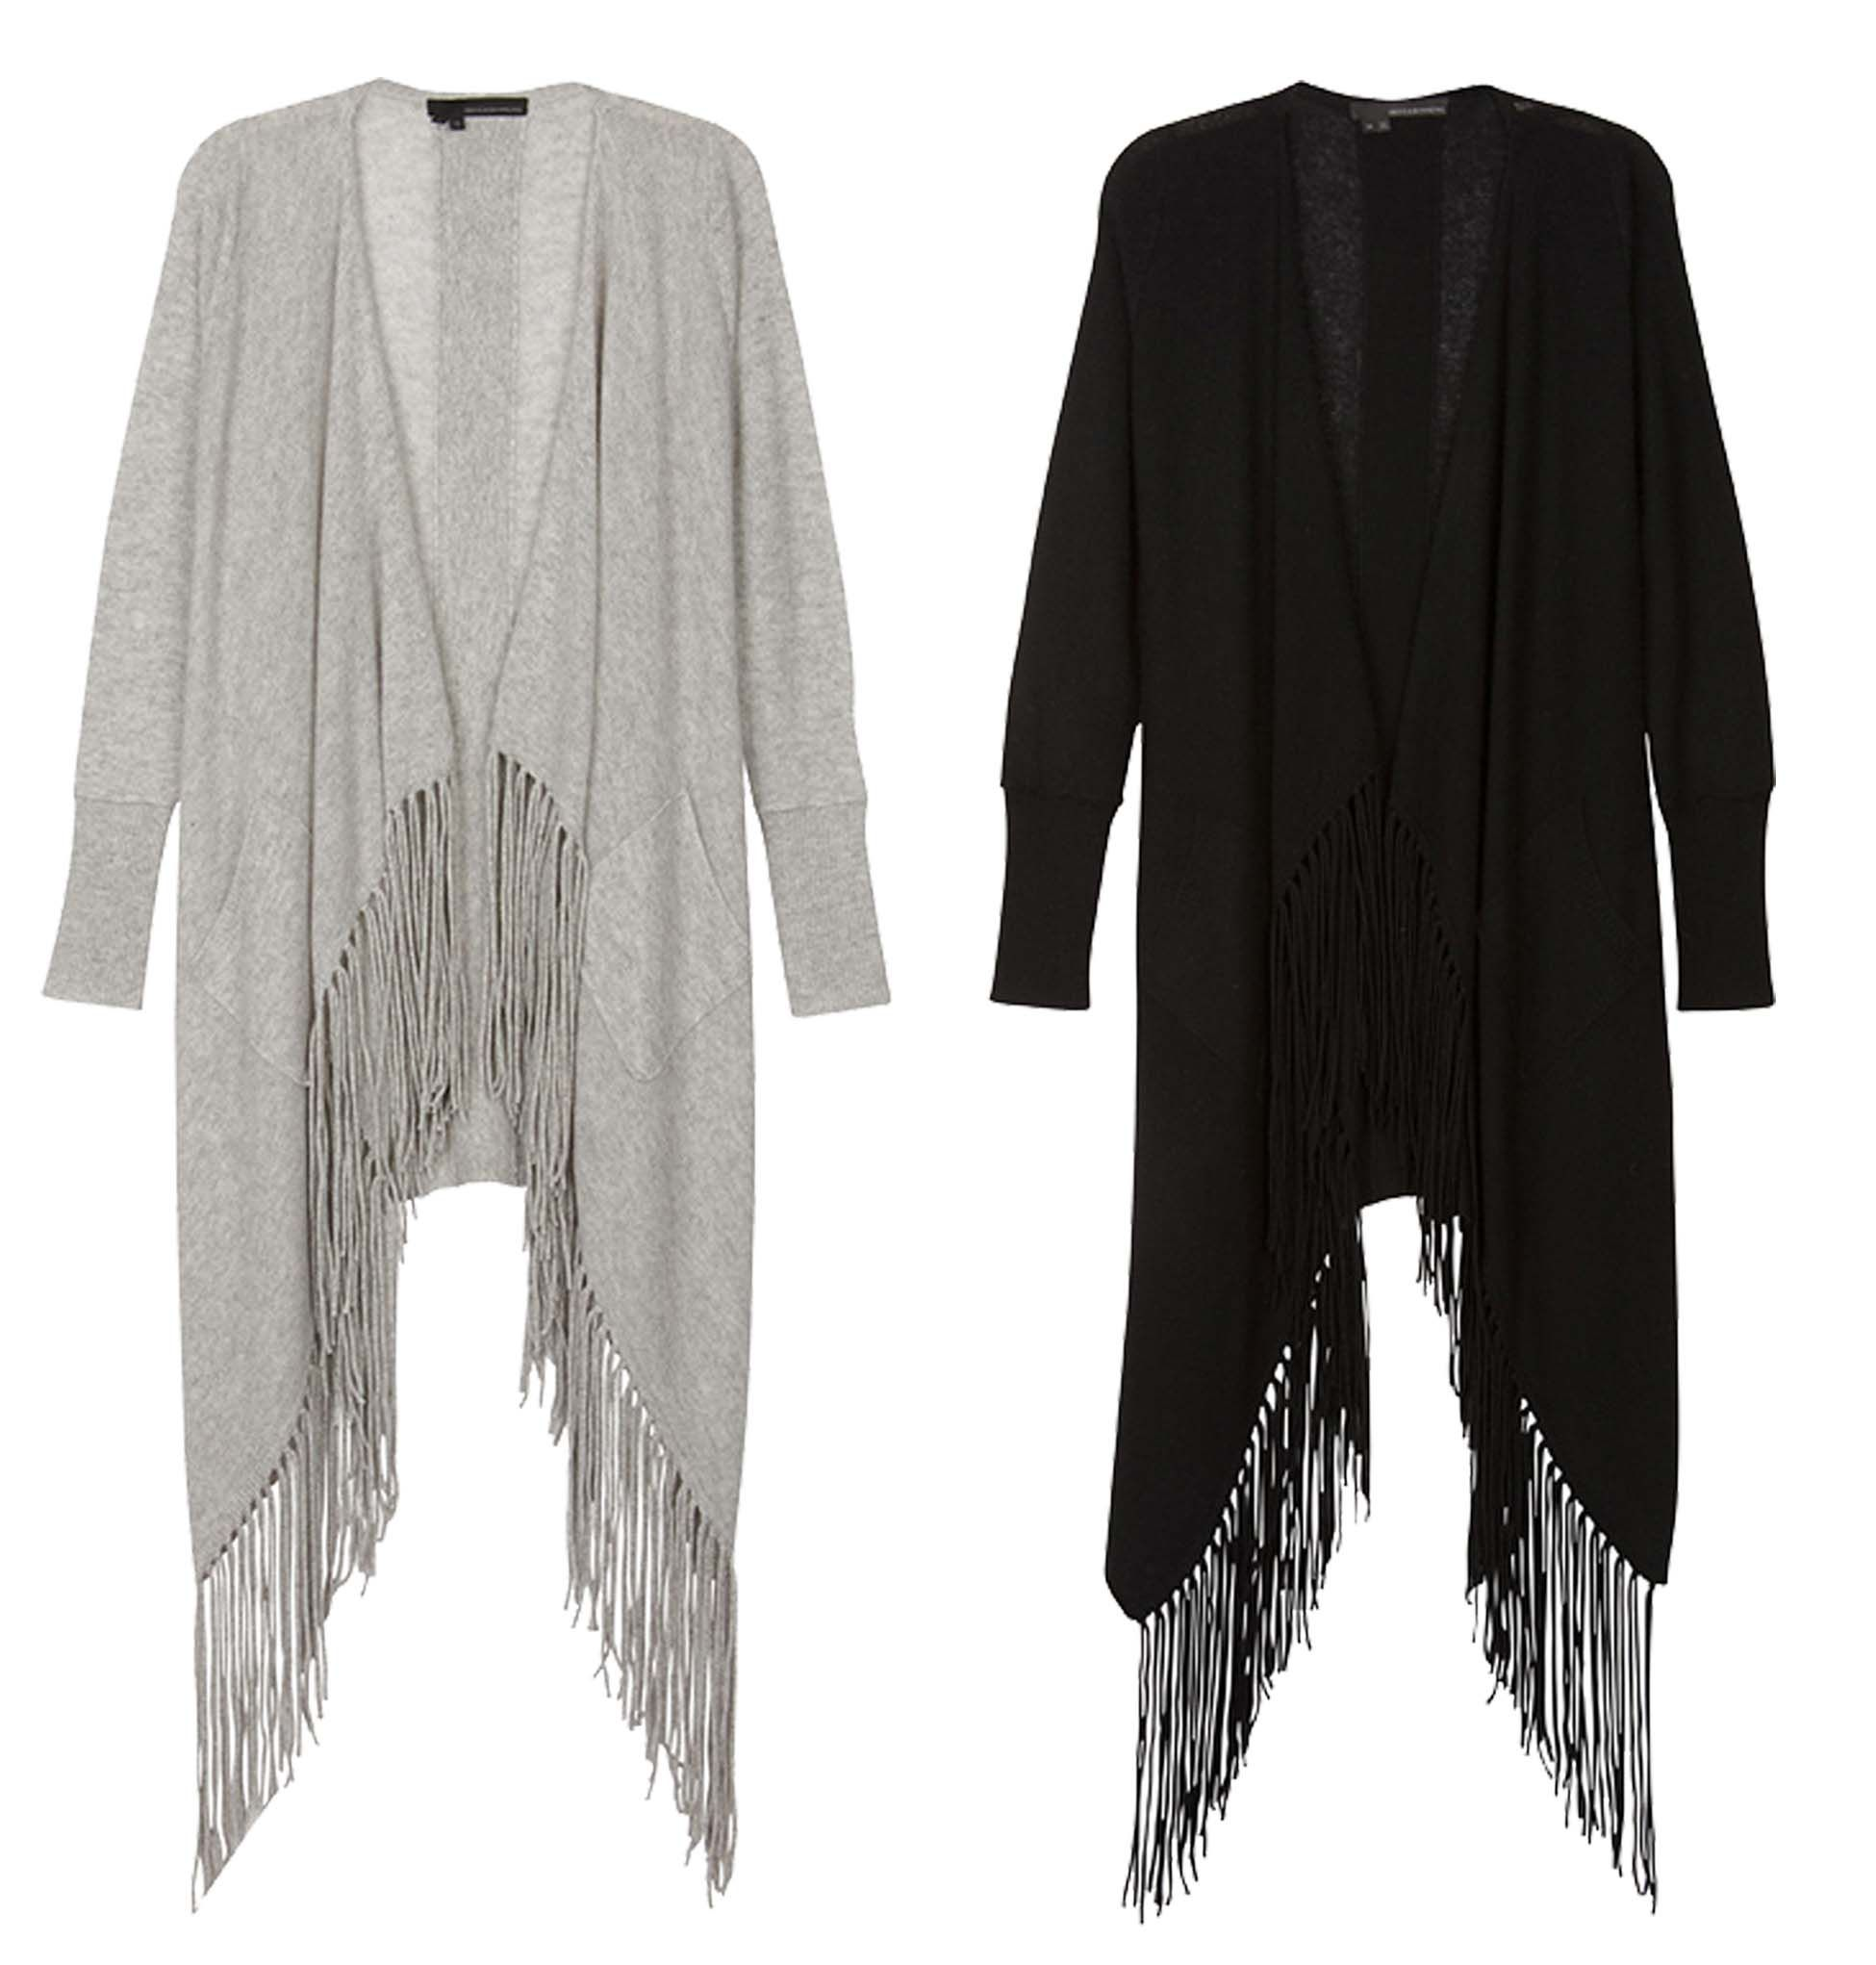 360Cashmere Fringe Waterfall Cardigan in light grey or black now ...